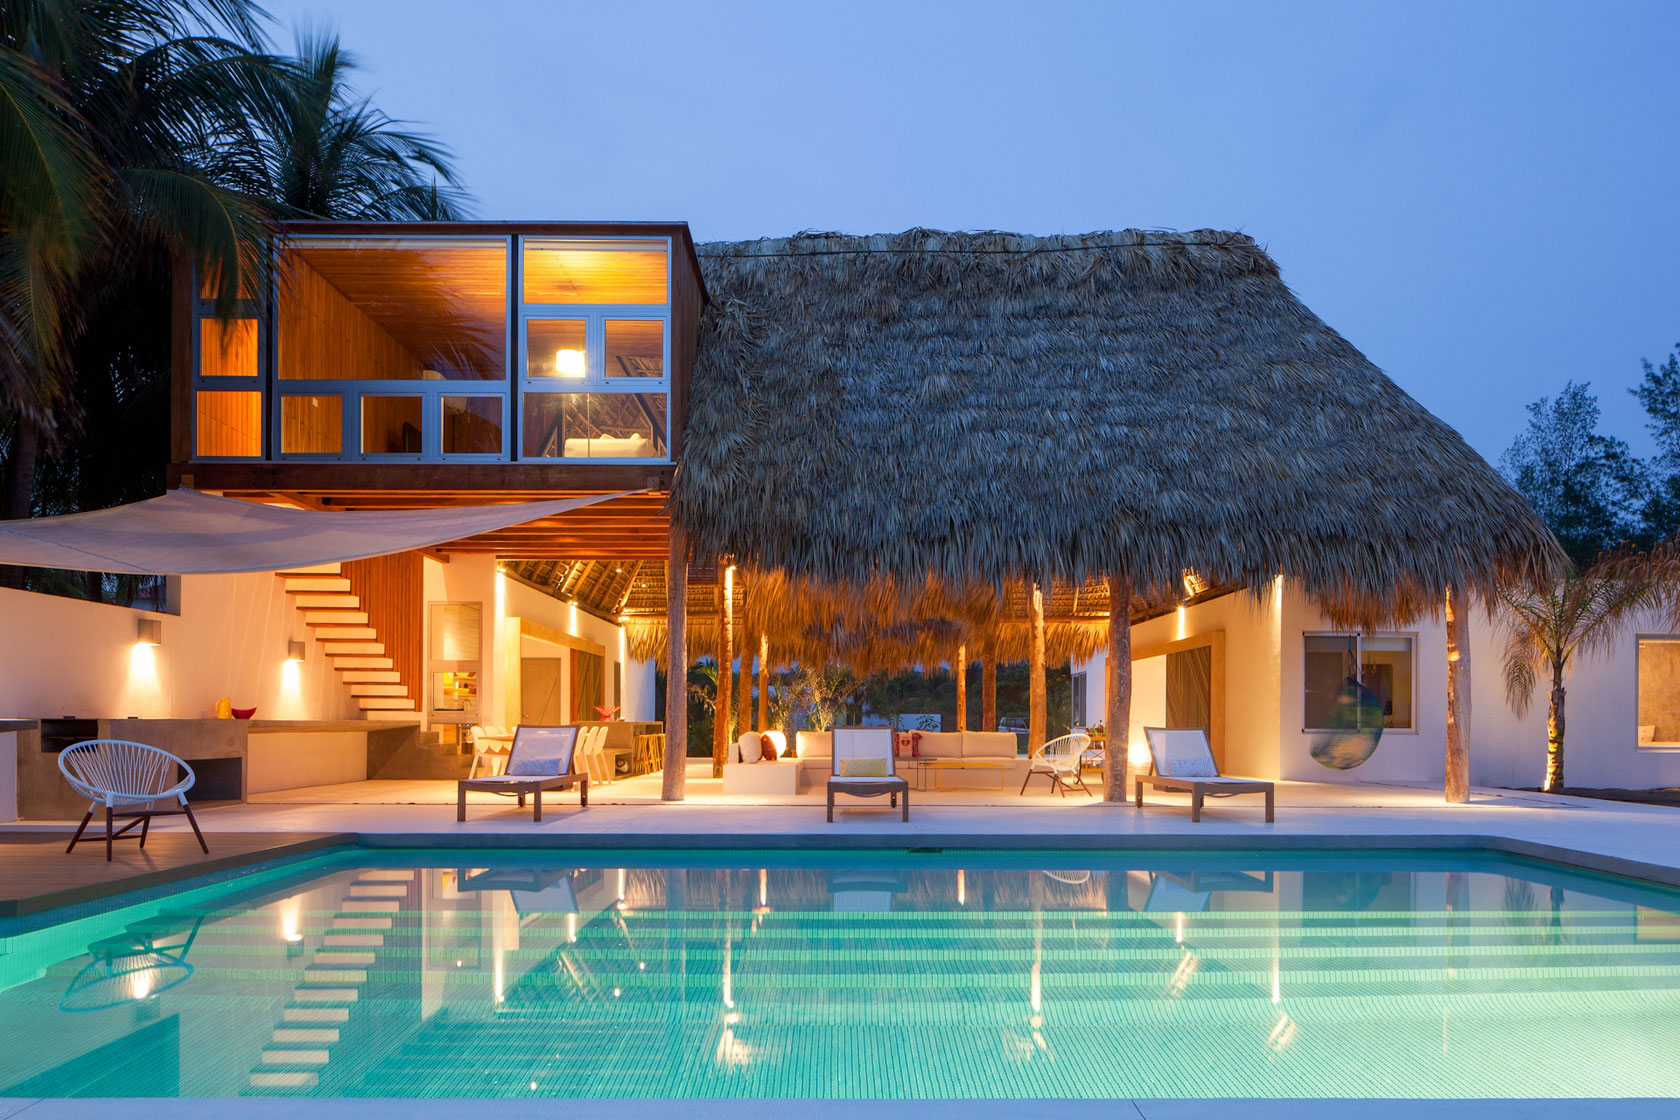 Open Beach House in San Salvador, El Salvador